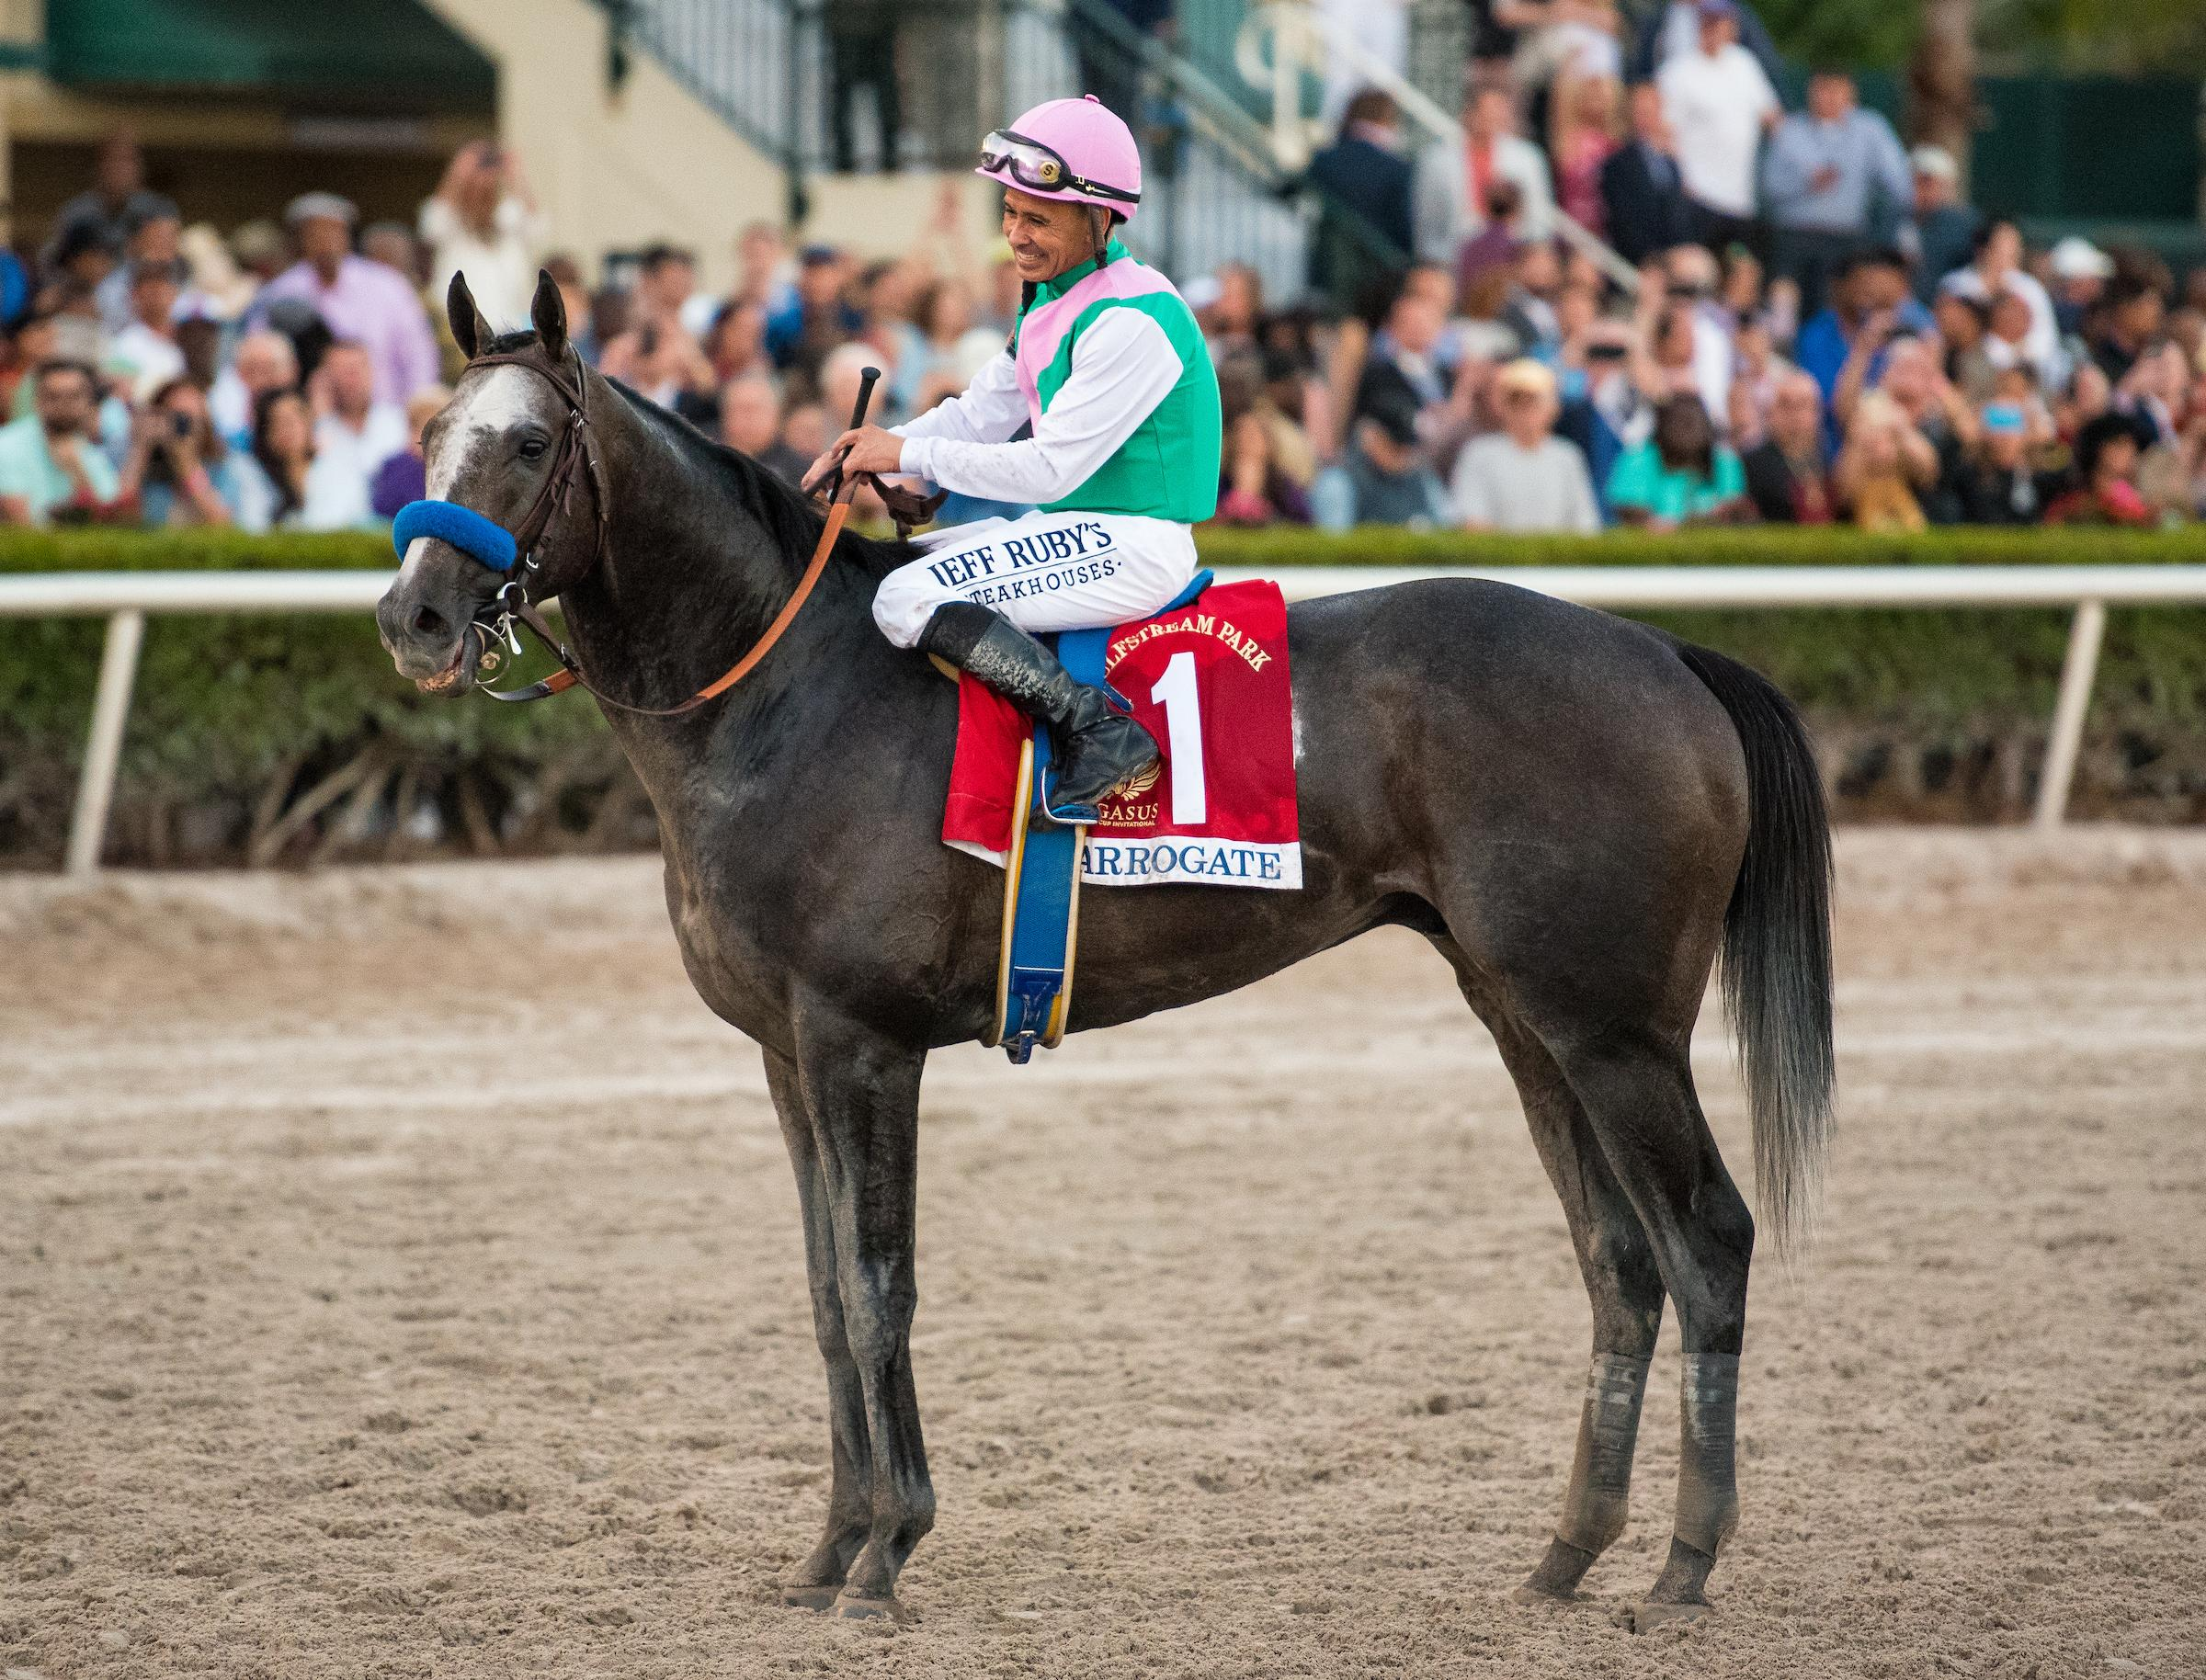 Two-time World's Best Racehorse Arrogate